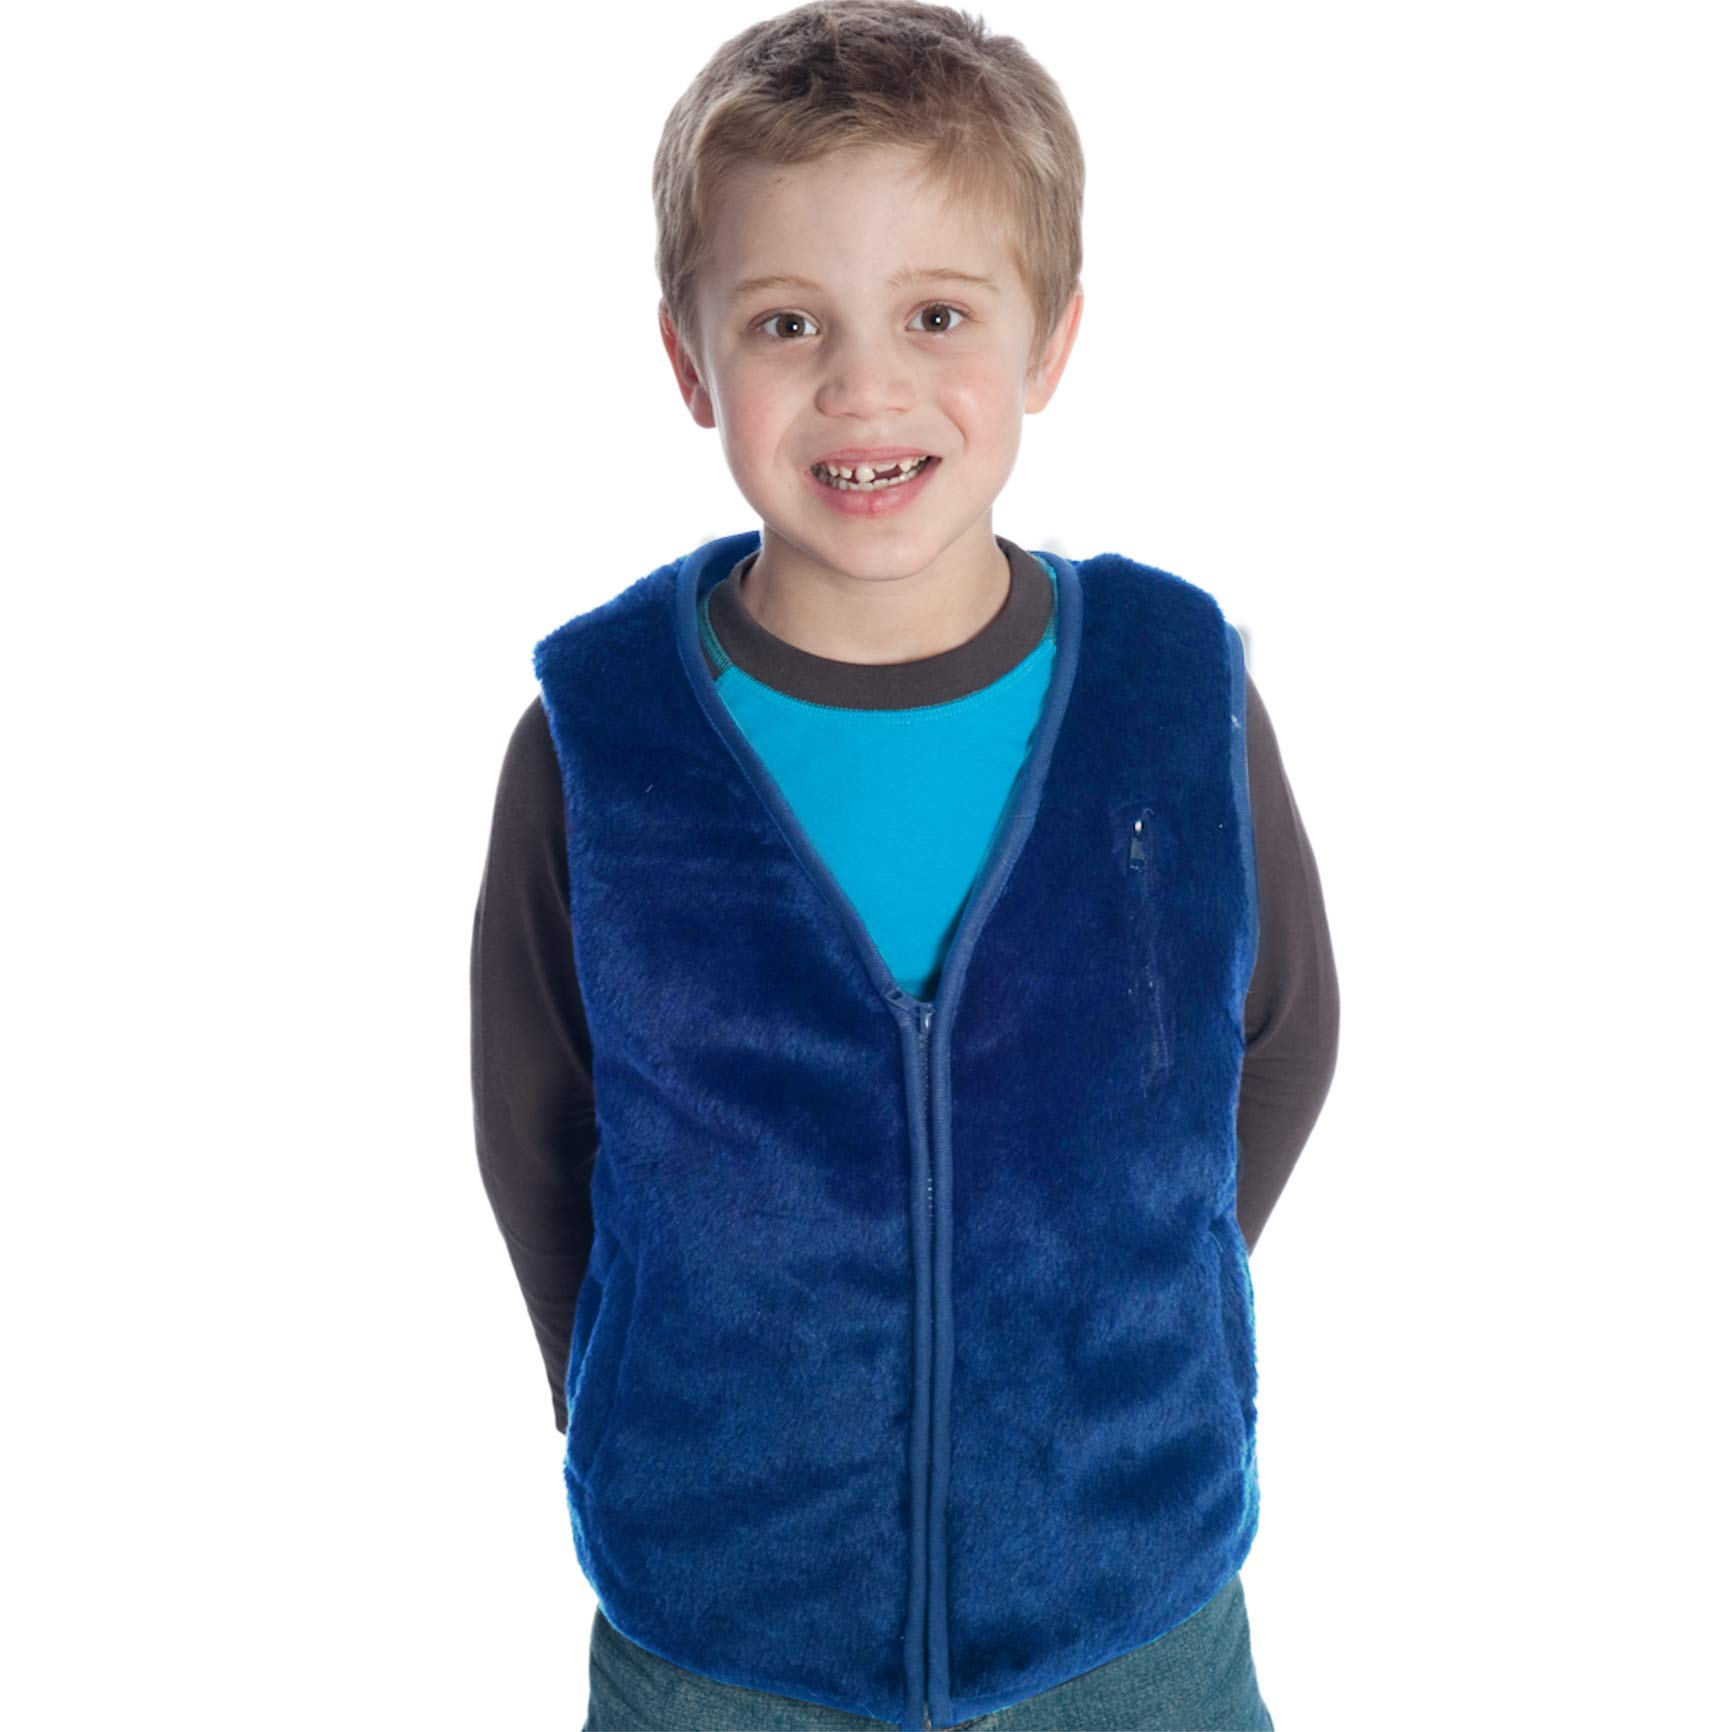 Weighted Vest in Blue Fur Size: Small by Fun and Function